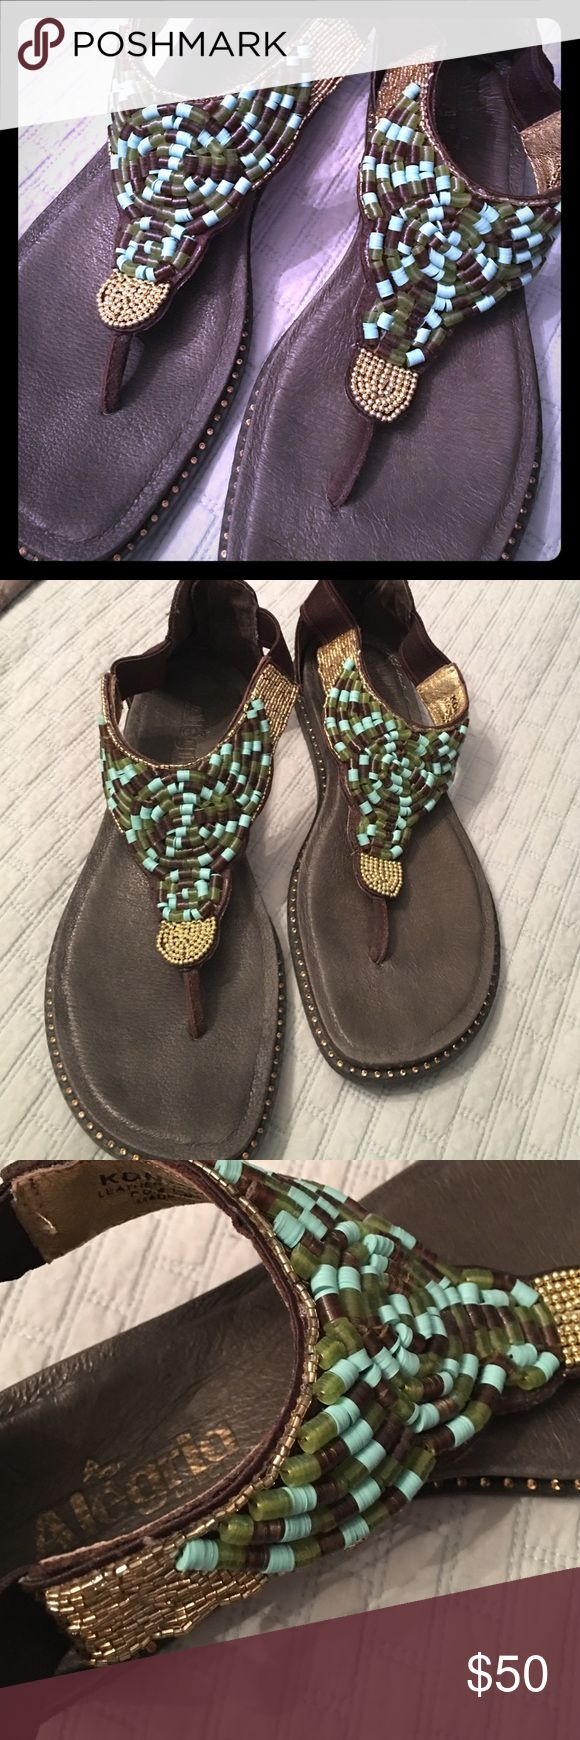 Boho Alegria Sandals size 10 gold beading Beautiful Alegria sandals that are amazingly comfortable- these are the insoles nurses wear.  Brown is the primary color - leather upper & lining. I have only worn 2-3 times on vacation - purchased in a boutique in Granbury, TX. Bottoms look new, around the outermost edges are small Amber beads or stones, backs have zipper that is leather attached to elastic stretch fabric. Top of shoe has round & long gold beads, green, aqua and brown discs strung…